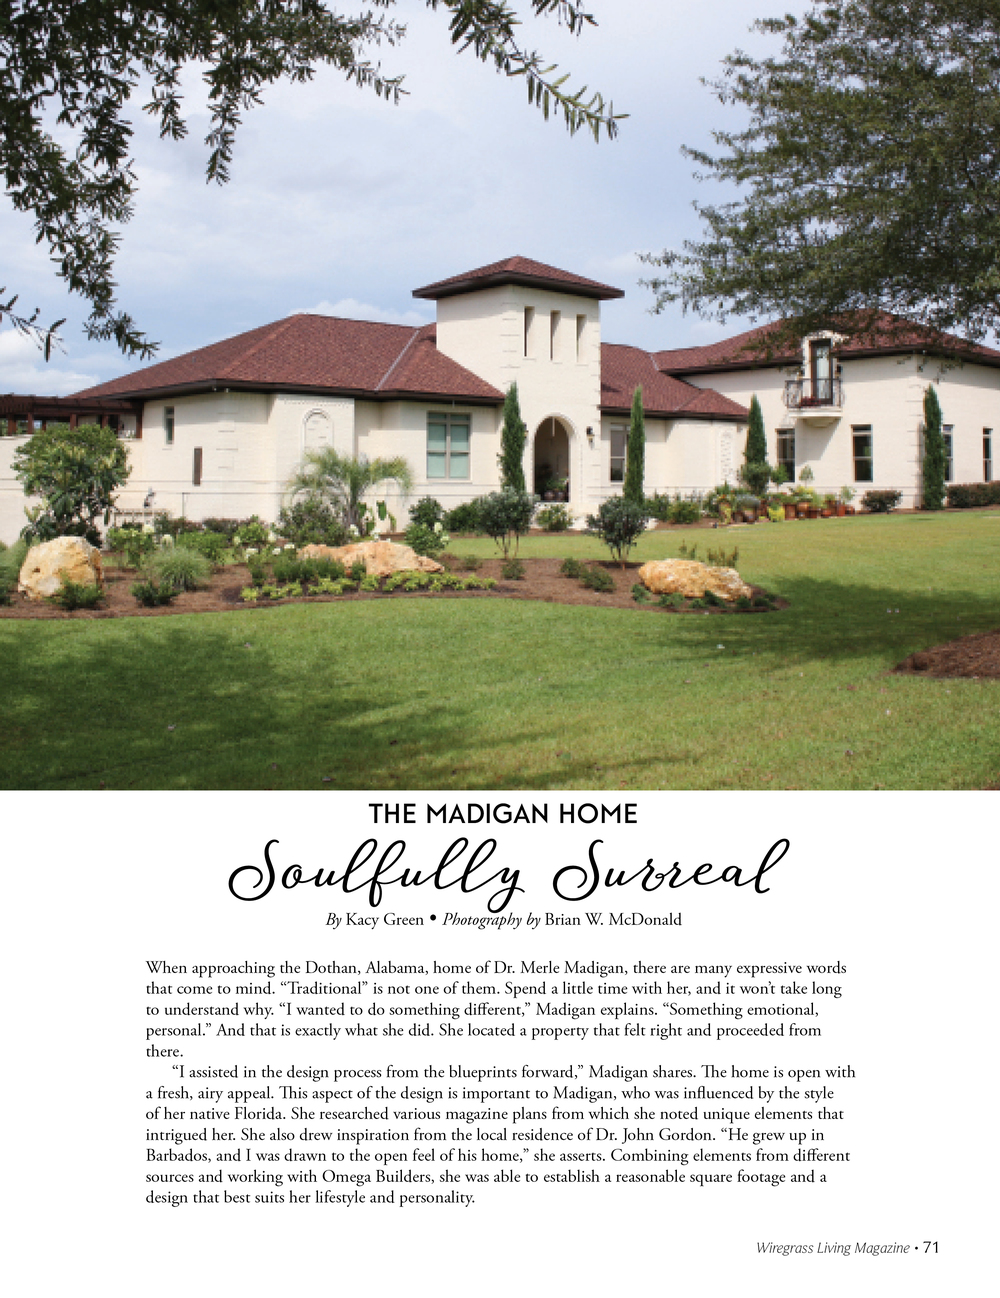 The Madigan Home, Wiregrass Living Magazine MJ16